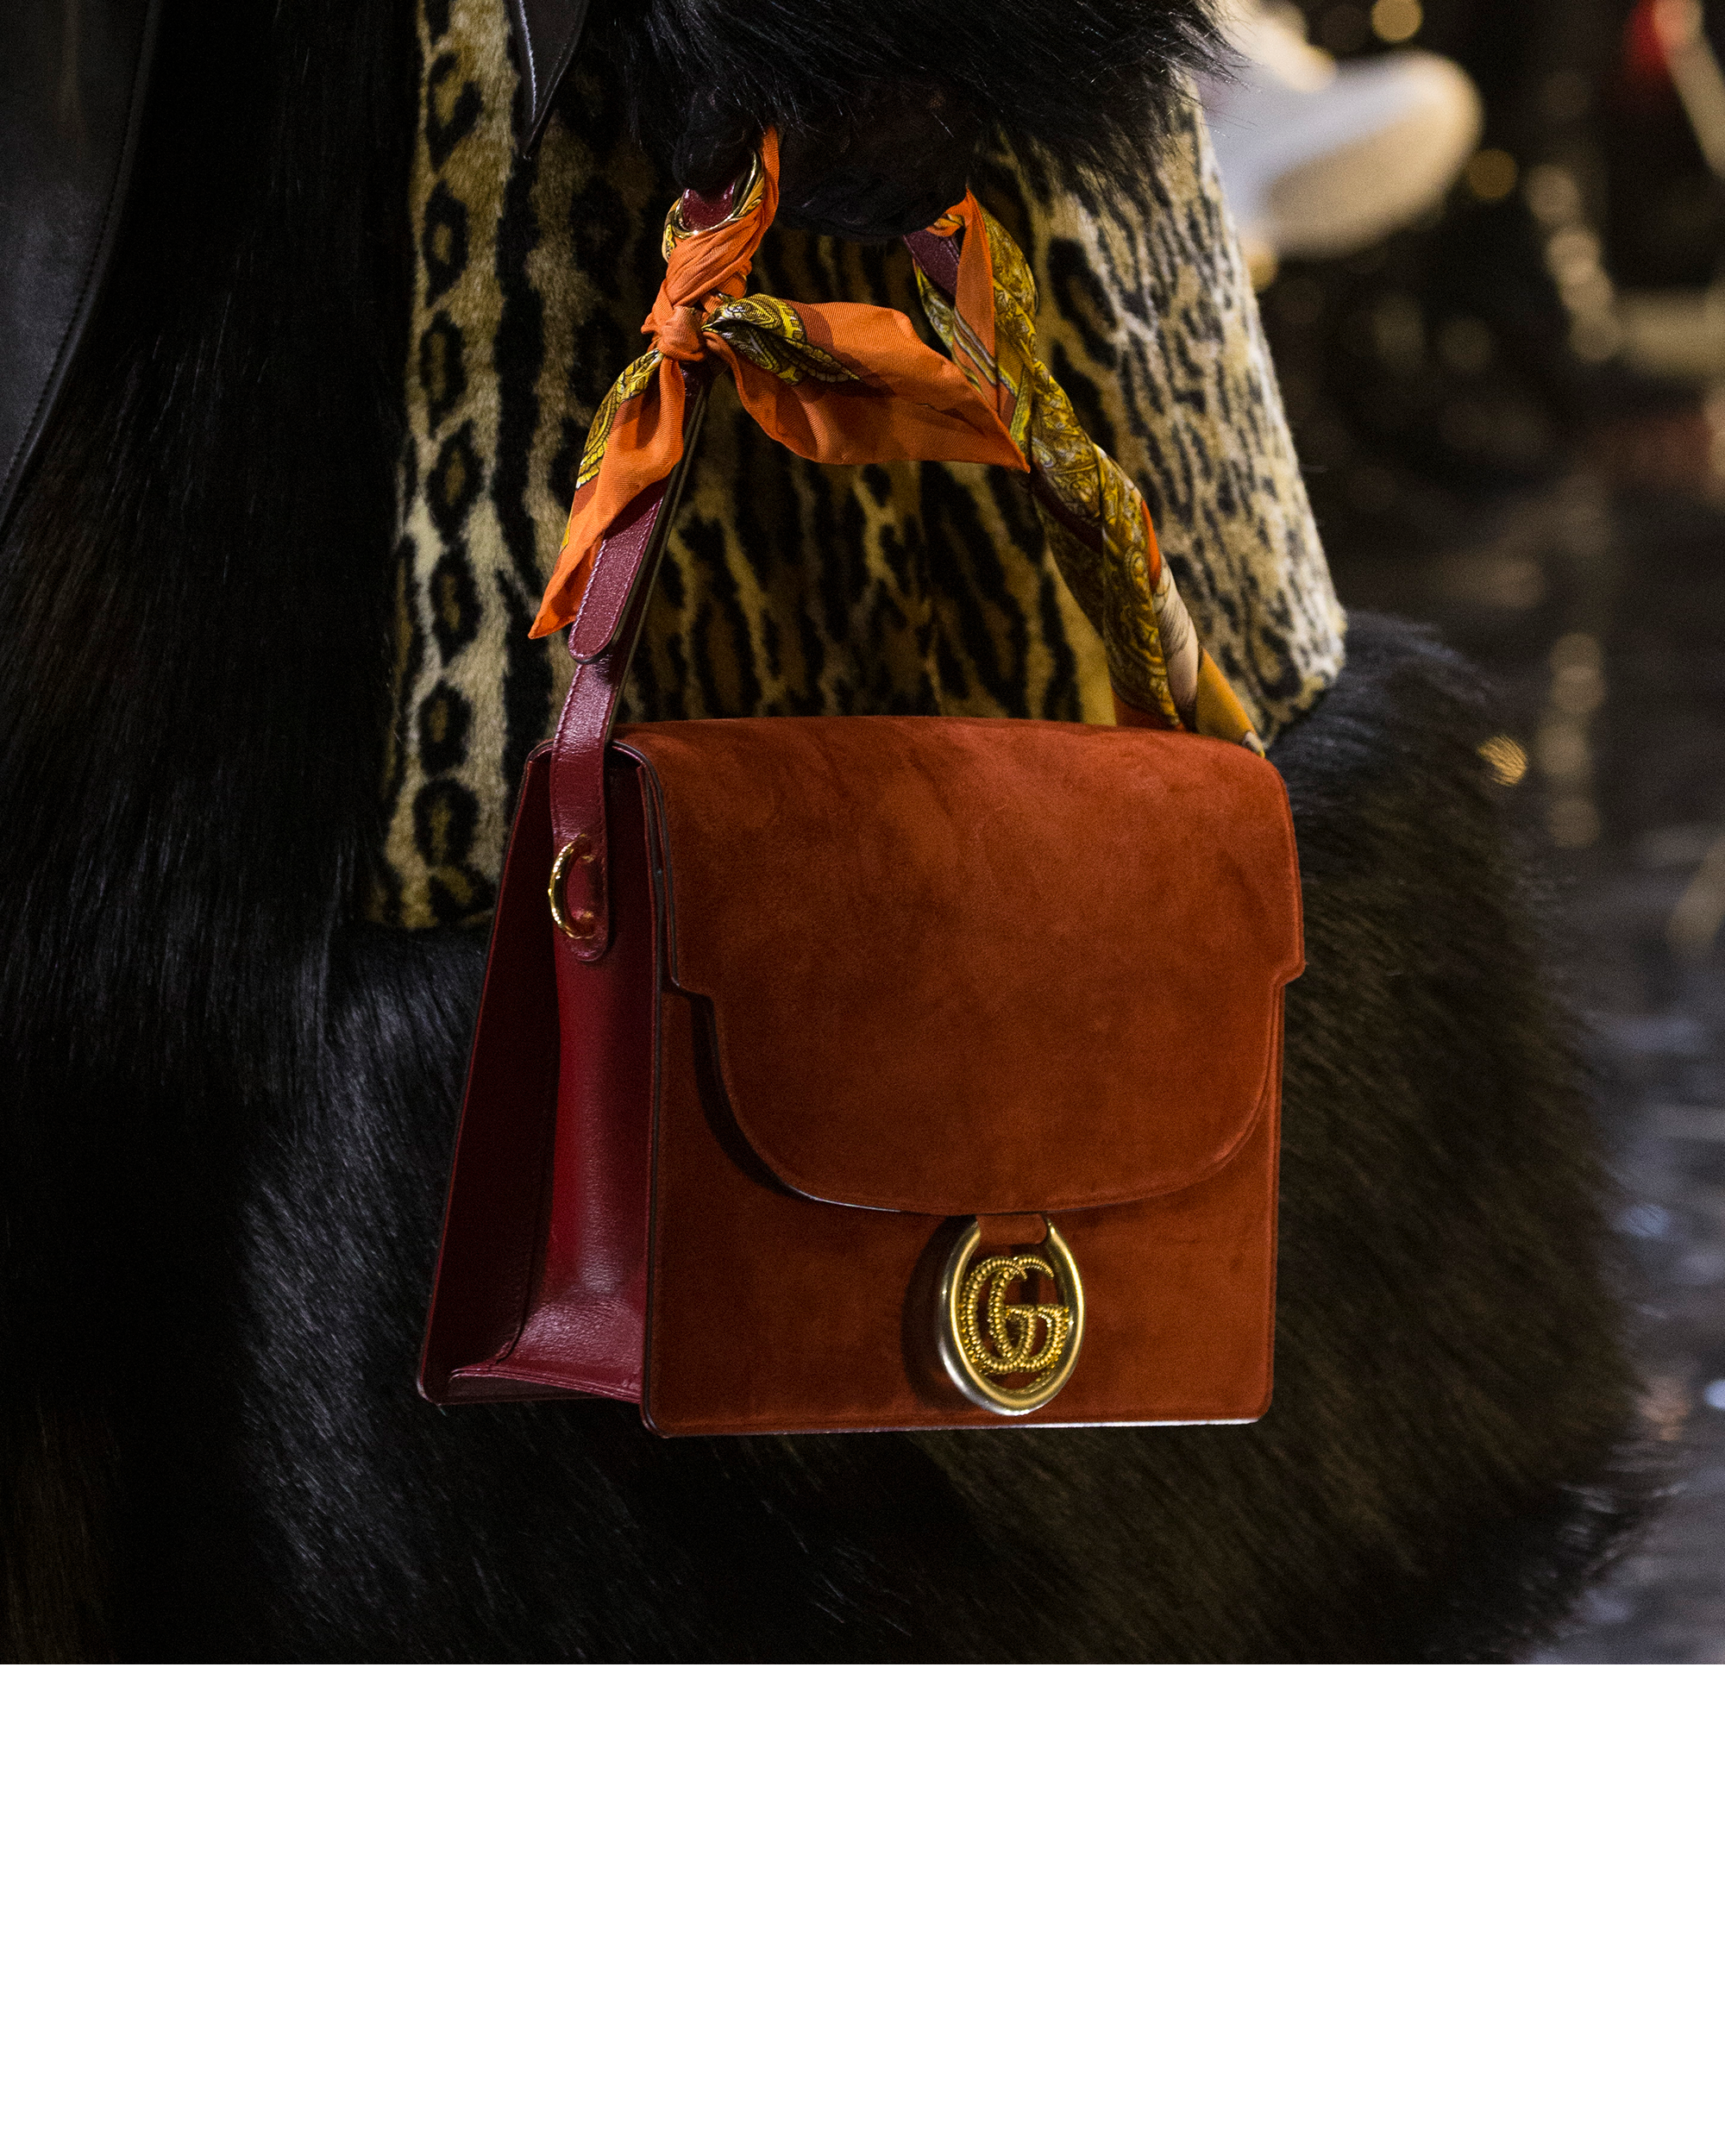 3131d0f58d5d Unveiled on the Gucci Fall Winter 2019 runway, a structured shaped bag  embellished with the Double G hardware.